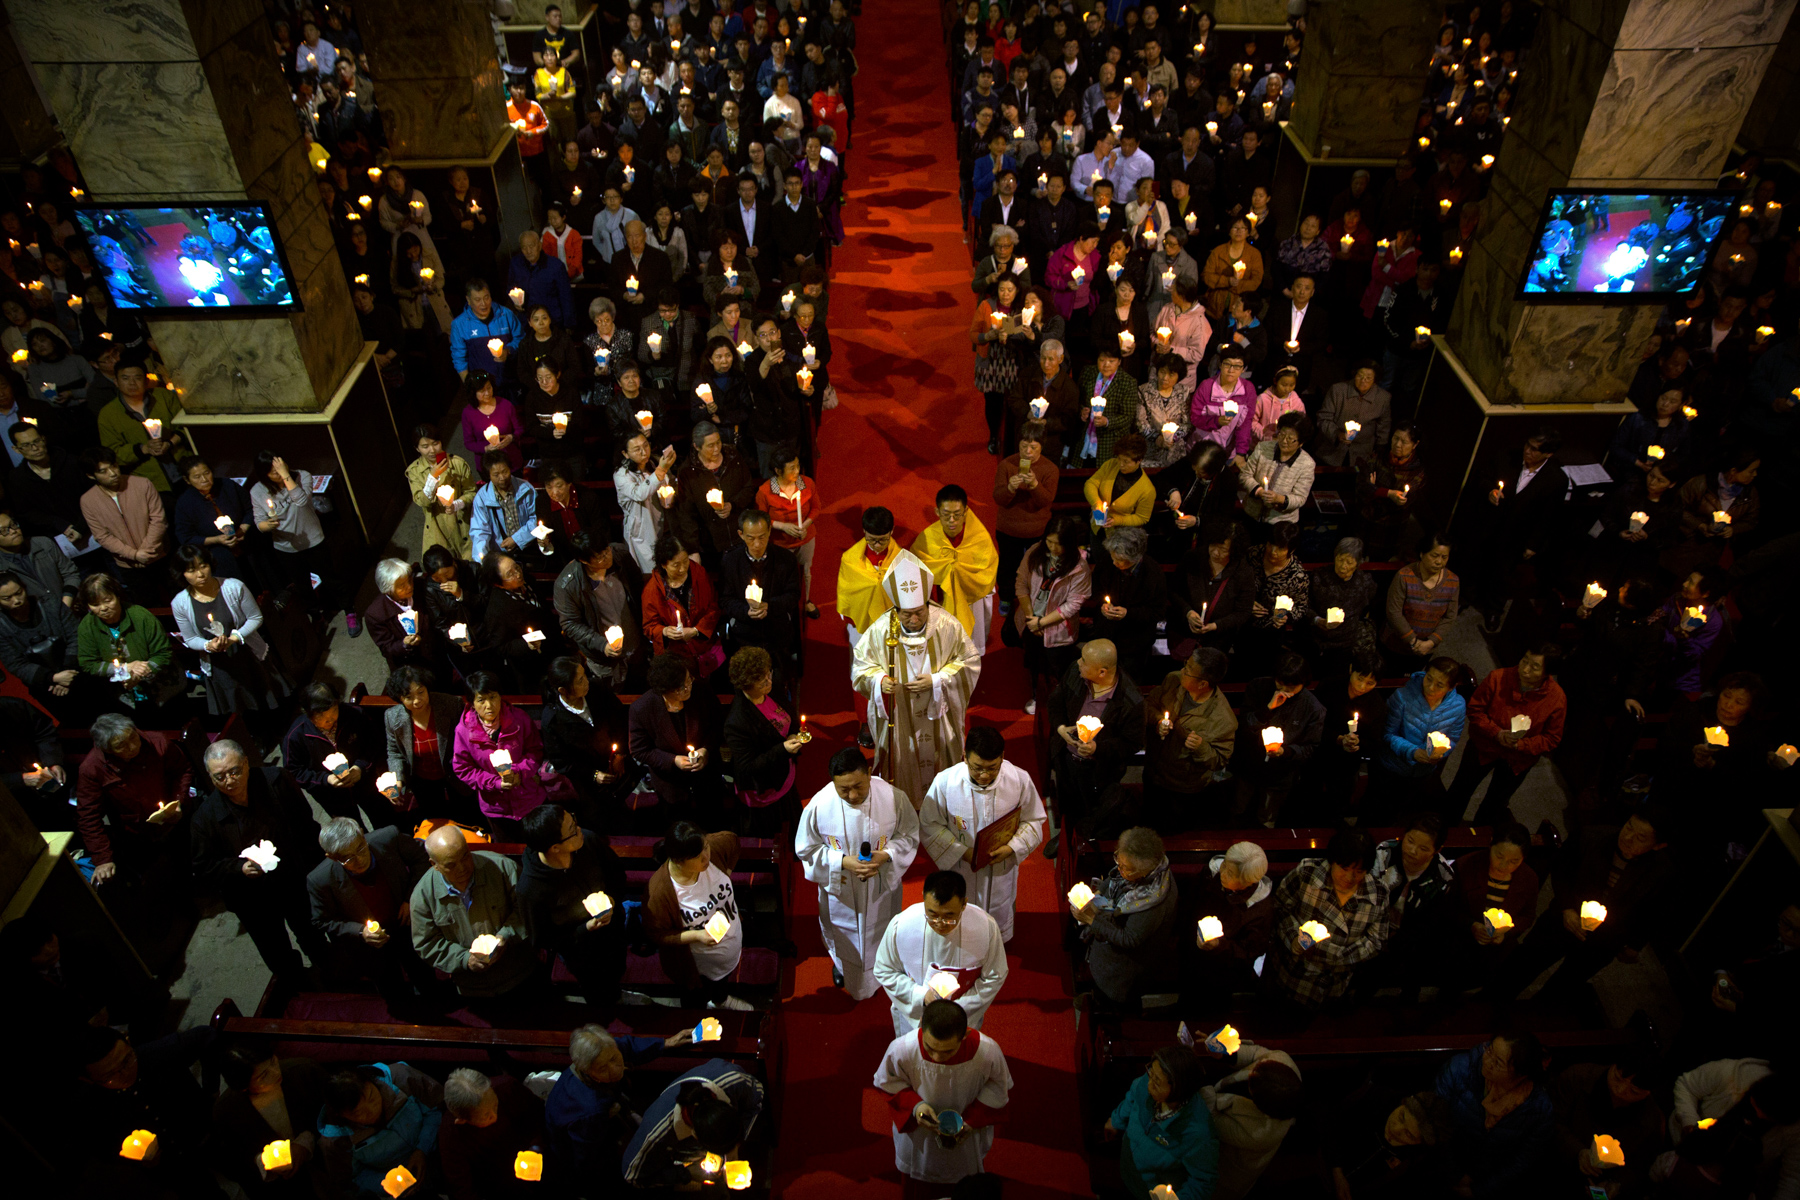 "Chinese Bishop Joseph Li Shan, center, walks down the aisle during a Holy Saturday mass on the evening before Easter at the Cathedral of the Immaculate Conception, a government-sanctioned Catholic church in Beijing, March 31. In September, the Vatican signed a controversial deal with China acknowledging the Chinese Communist Party's power to nominate bishops. Meanwhile, the government ramped up its policing of ""unauthorized"" Protestant churches. (Mark Schiefelbein/AP Photo)"